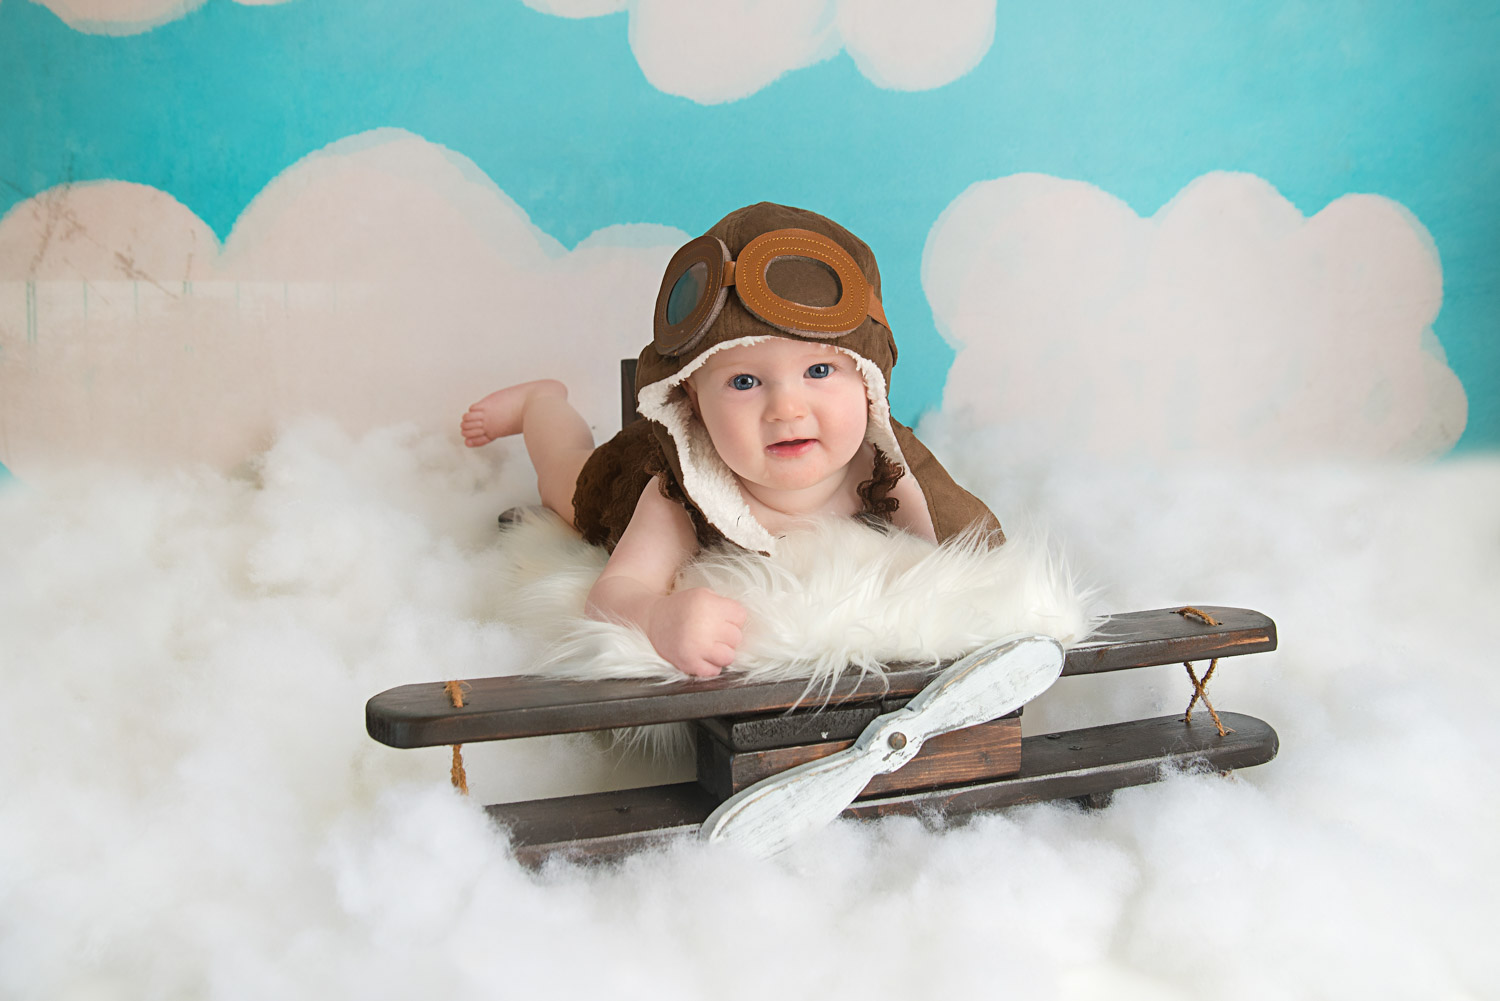 st-louis-baby-photographer-6-month-girl-on-wooden-plane-with-avaitor-hat-and-clouds.jpg